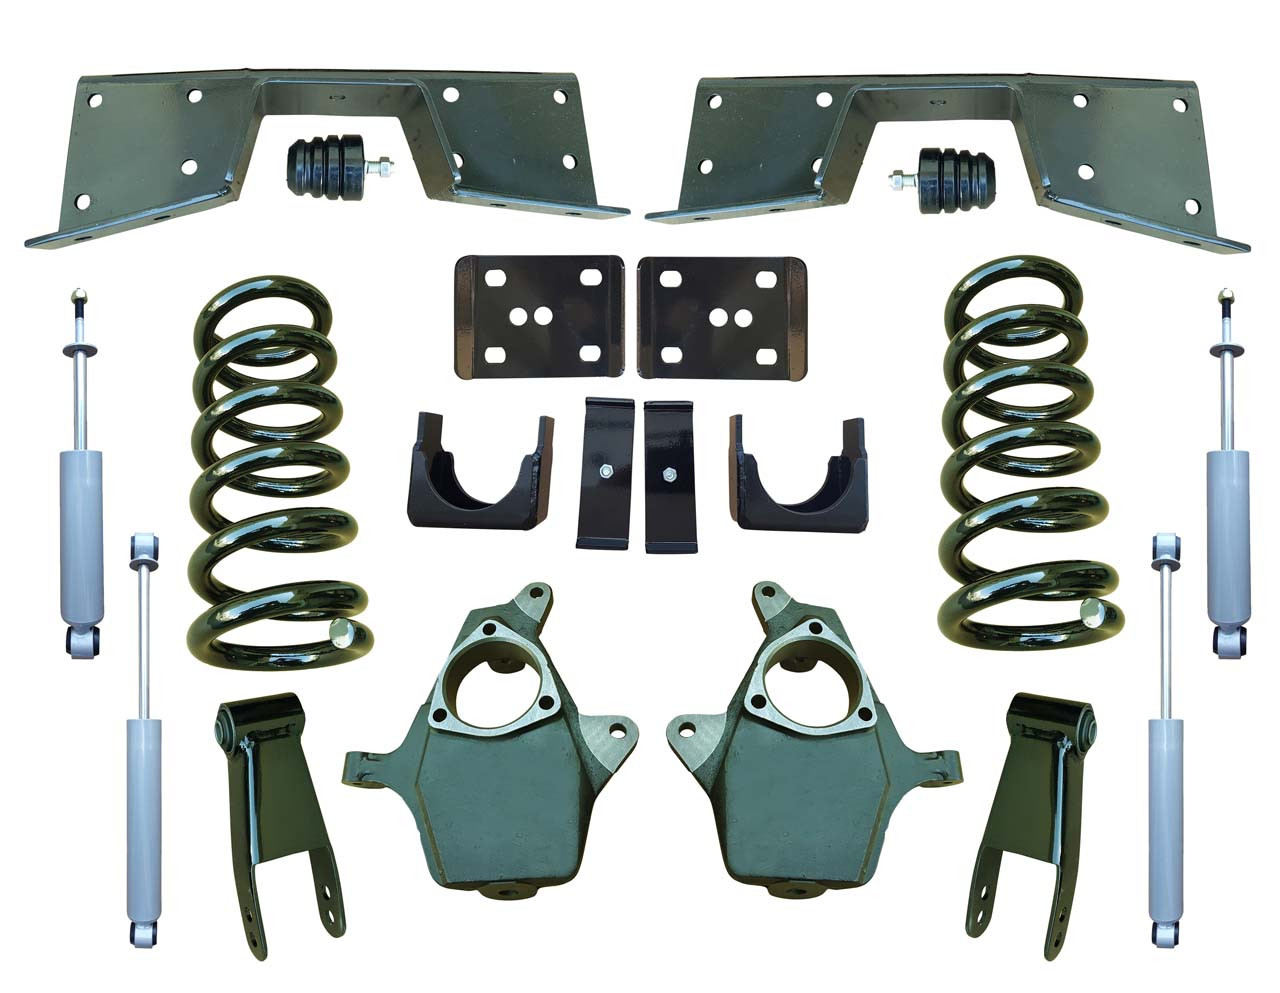 Complete 5/7 Lowering Kit for 01-06 GMC Sierra